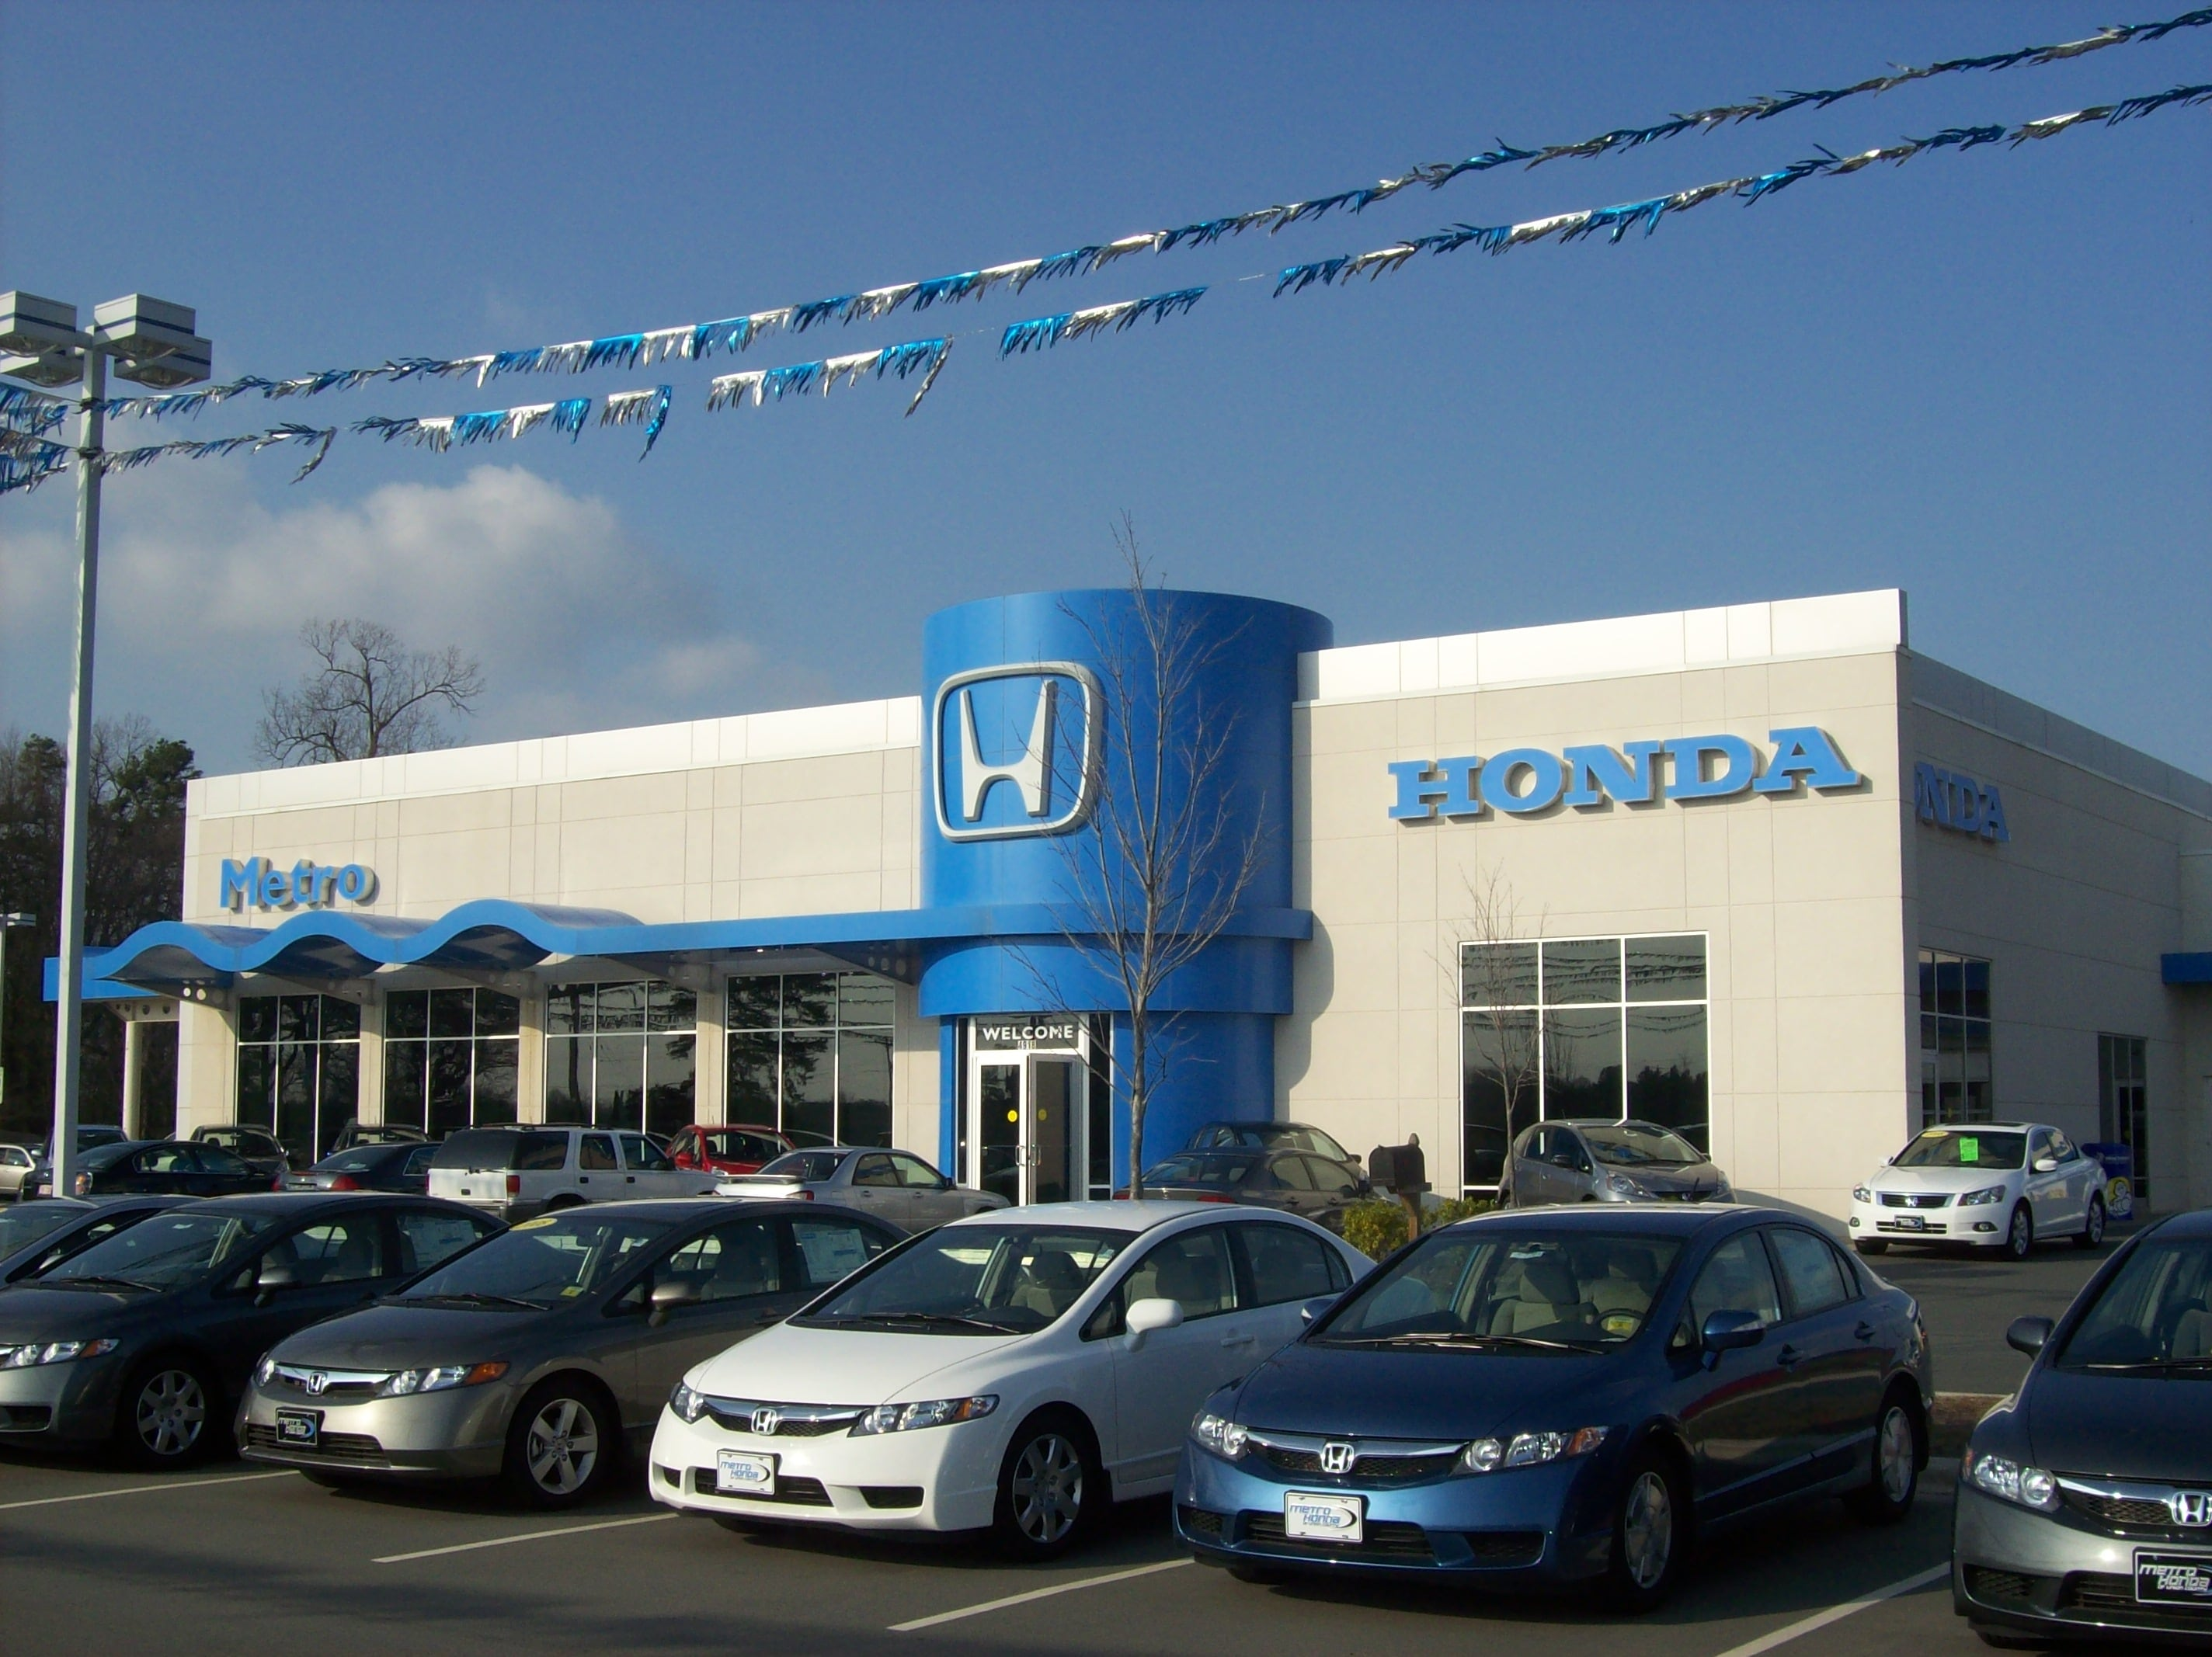 Metro Honda | New Honda dealership in Indian Trail, NC 28110